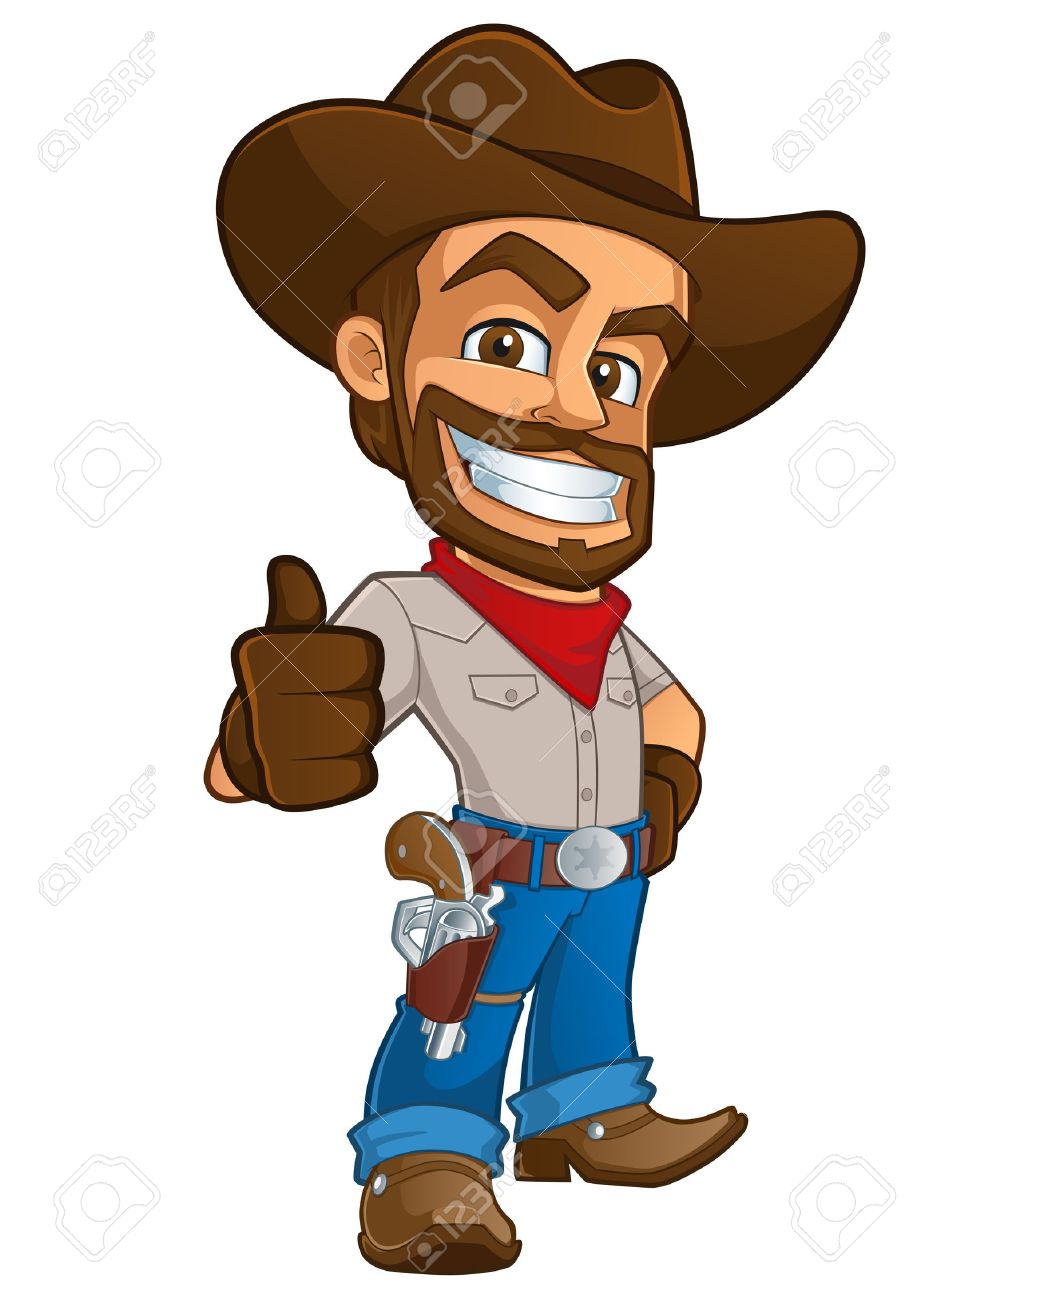 Cowboy clipart. Hat gun free on